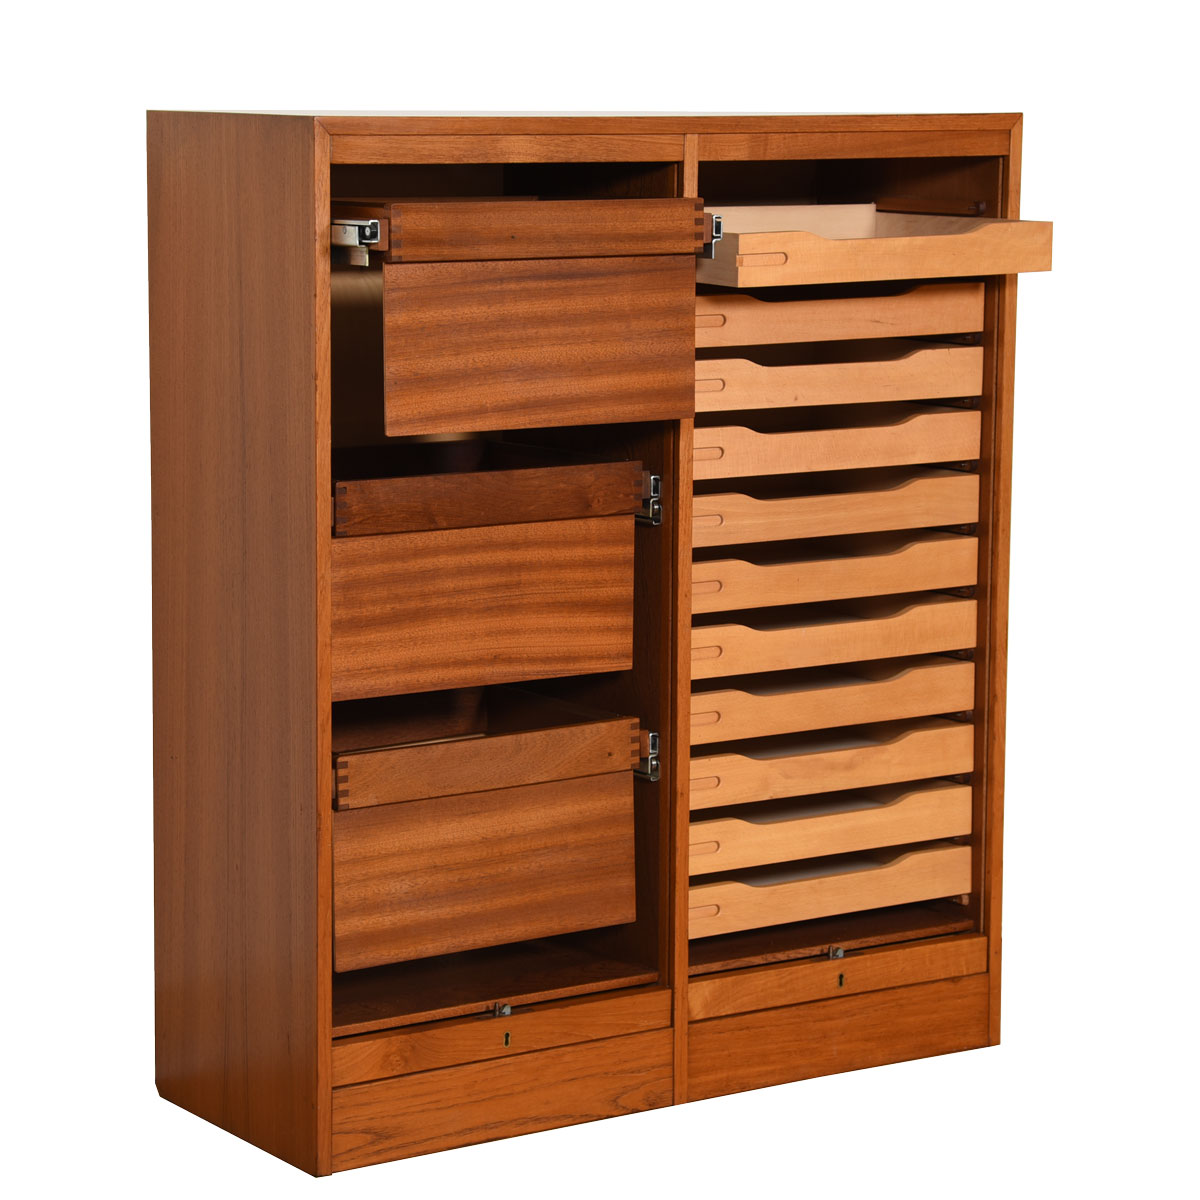 Danish Teak Locking Double Tambour Door File Cabinet / Organizer